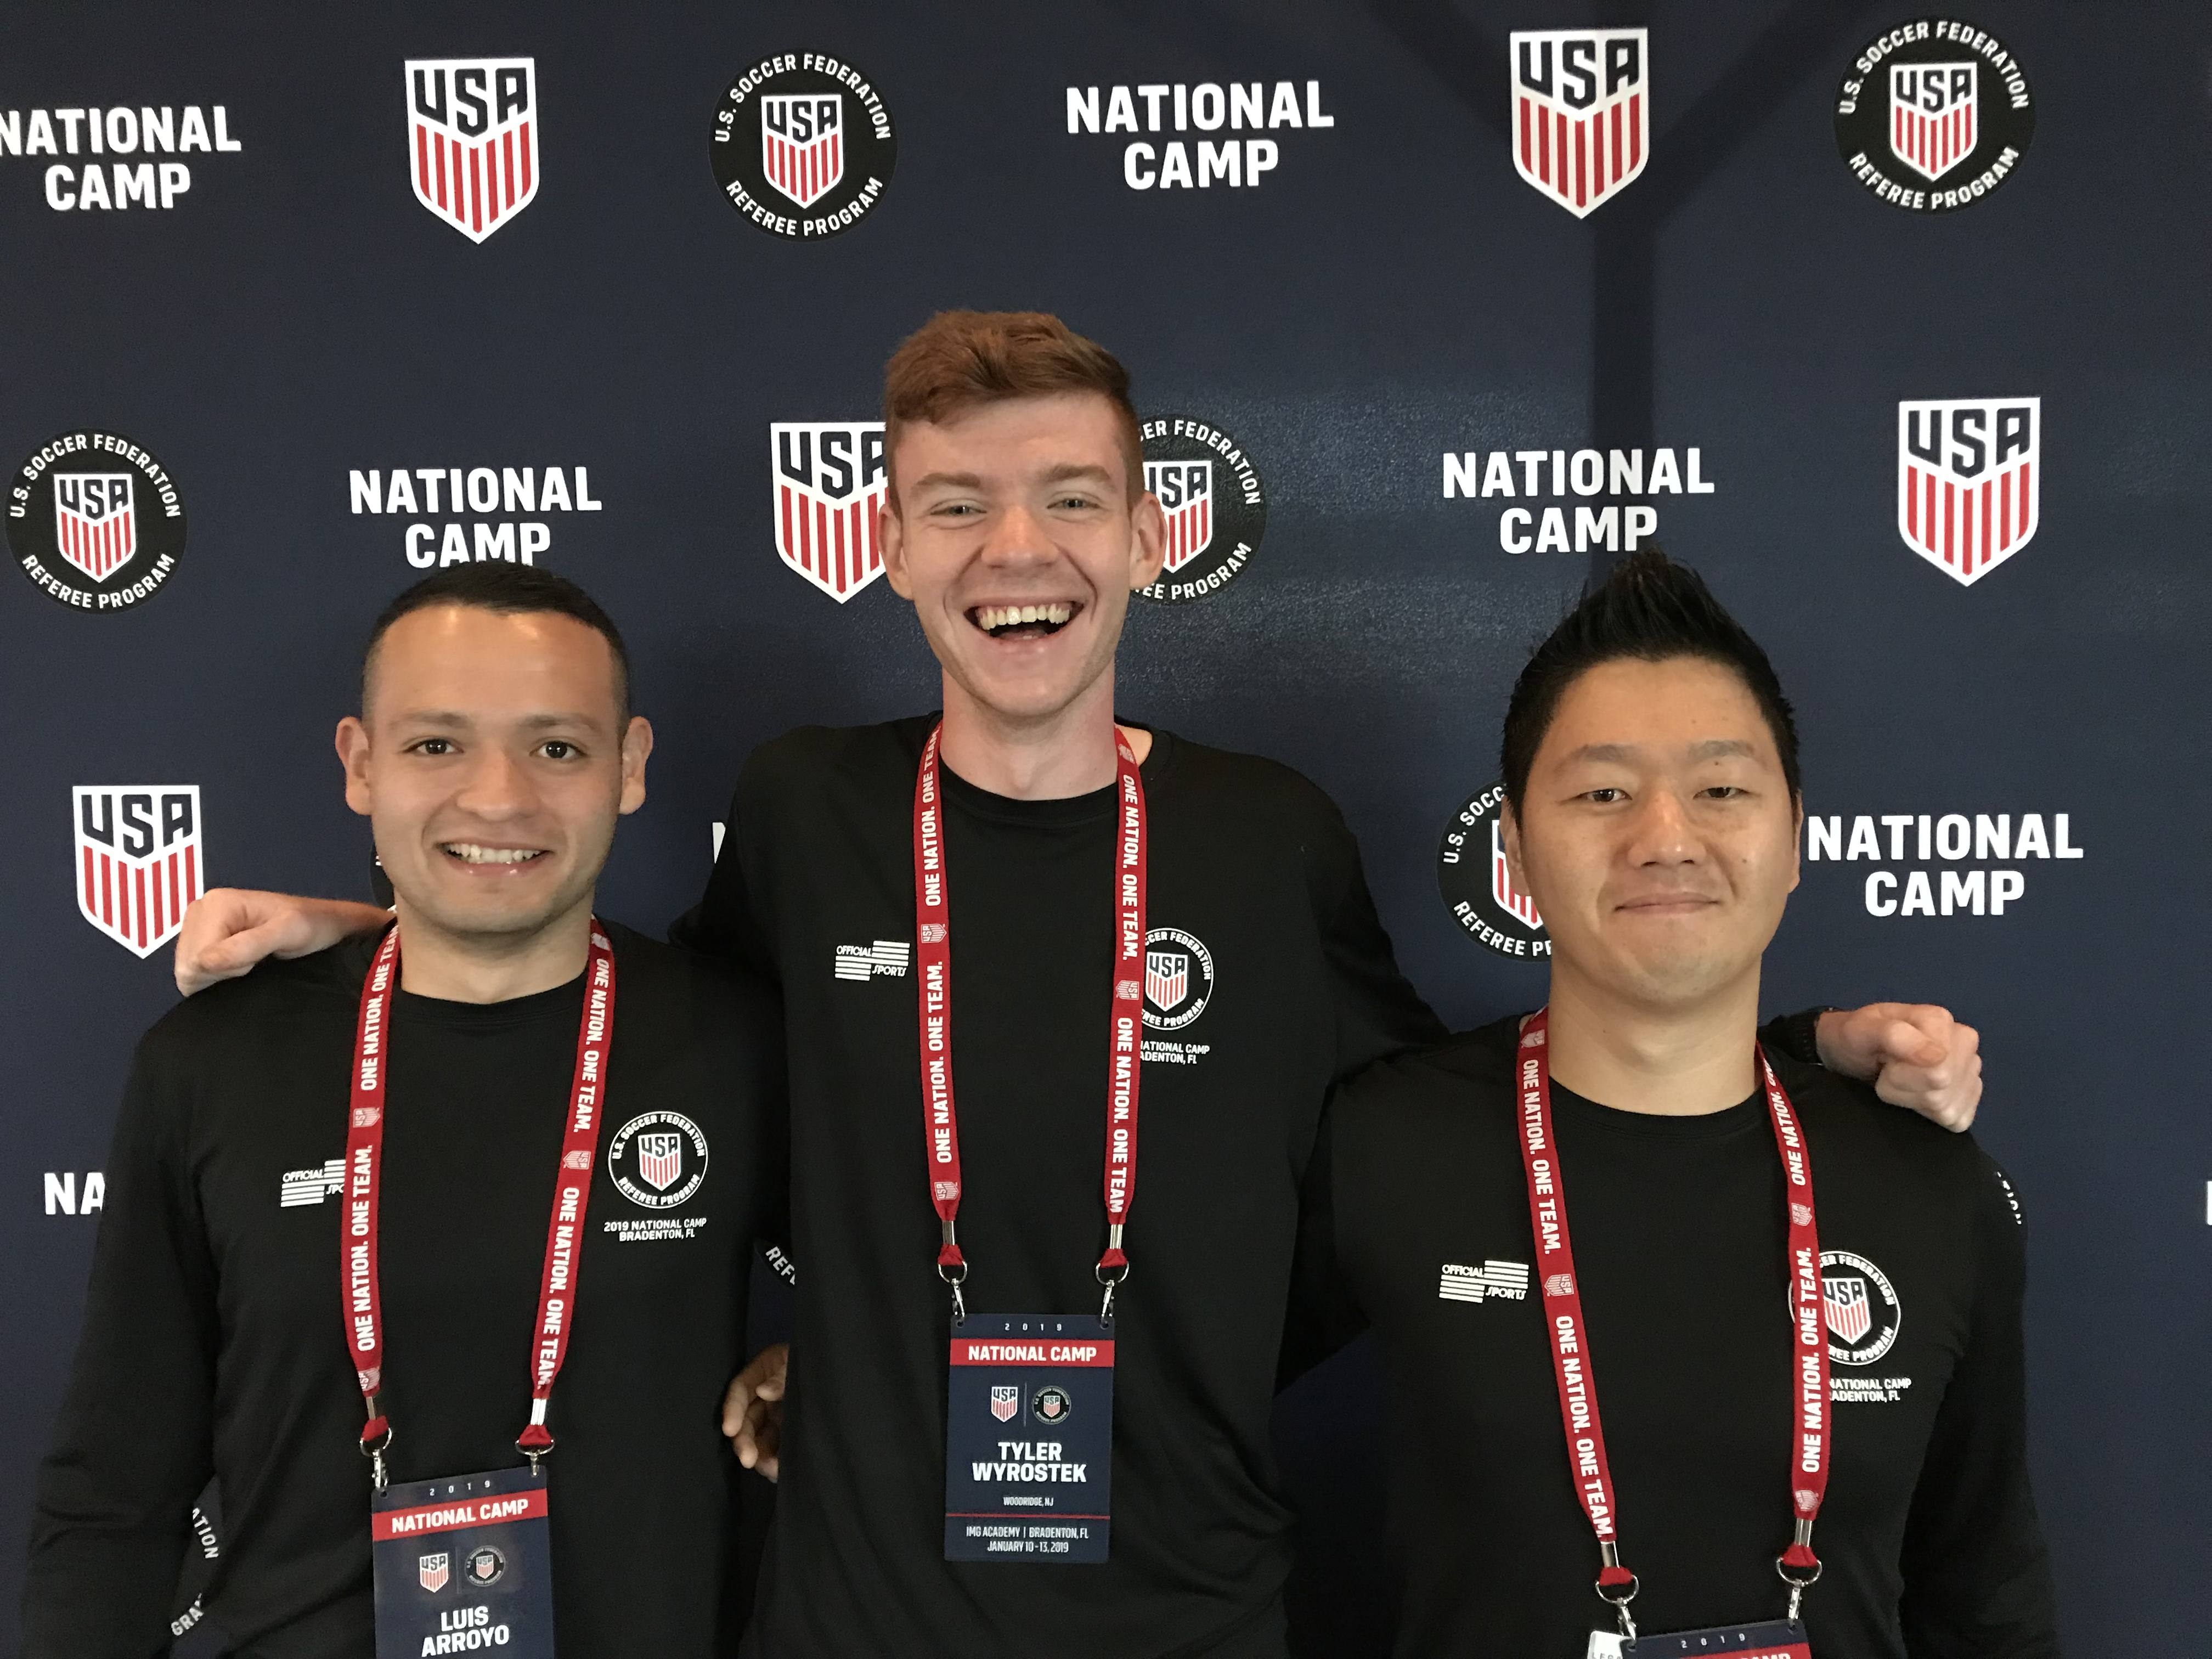 NJ's newest National Referees - Congratulations Luis Arroyo, Tyler Wyrostek and Zeno Cho